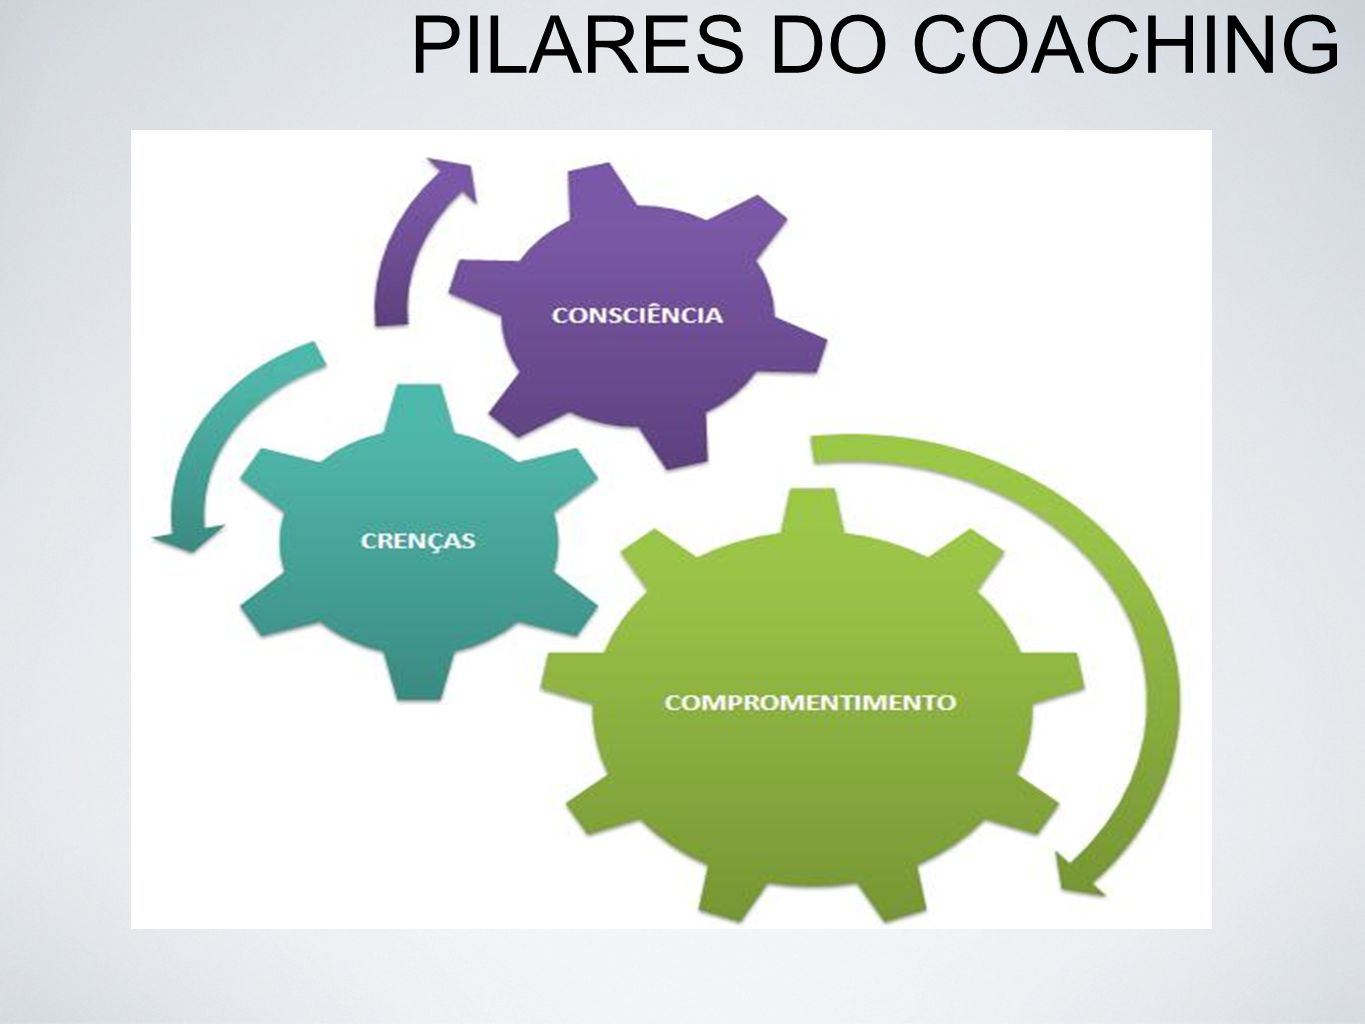 PILARES DO COACHING